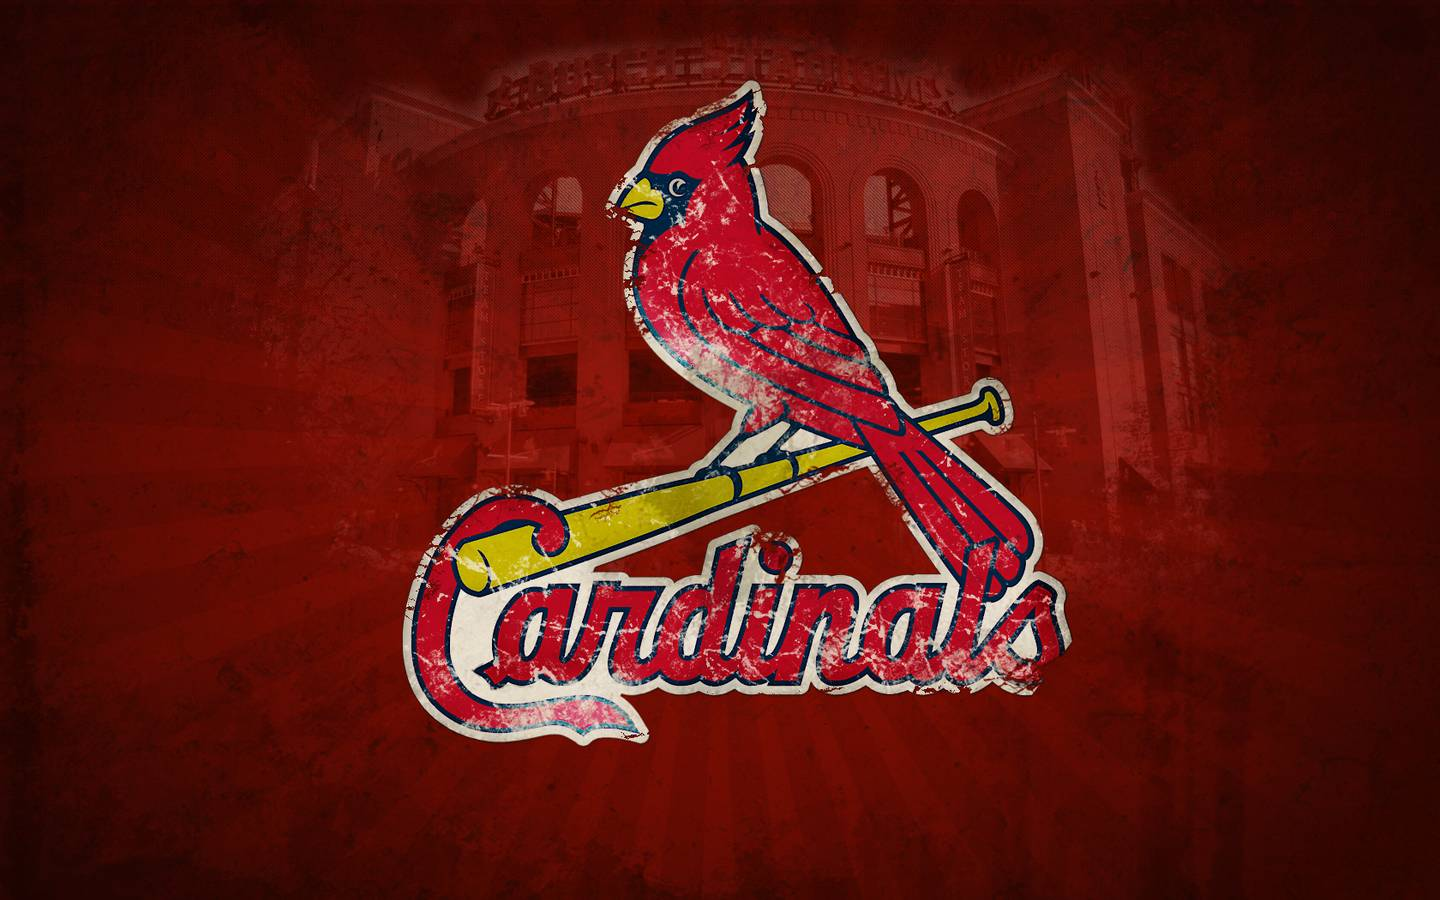 St. Louis Cardinals Downloads |Browser Themes, Desktop Wallpapers